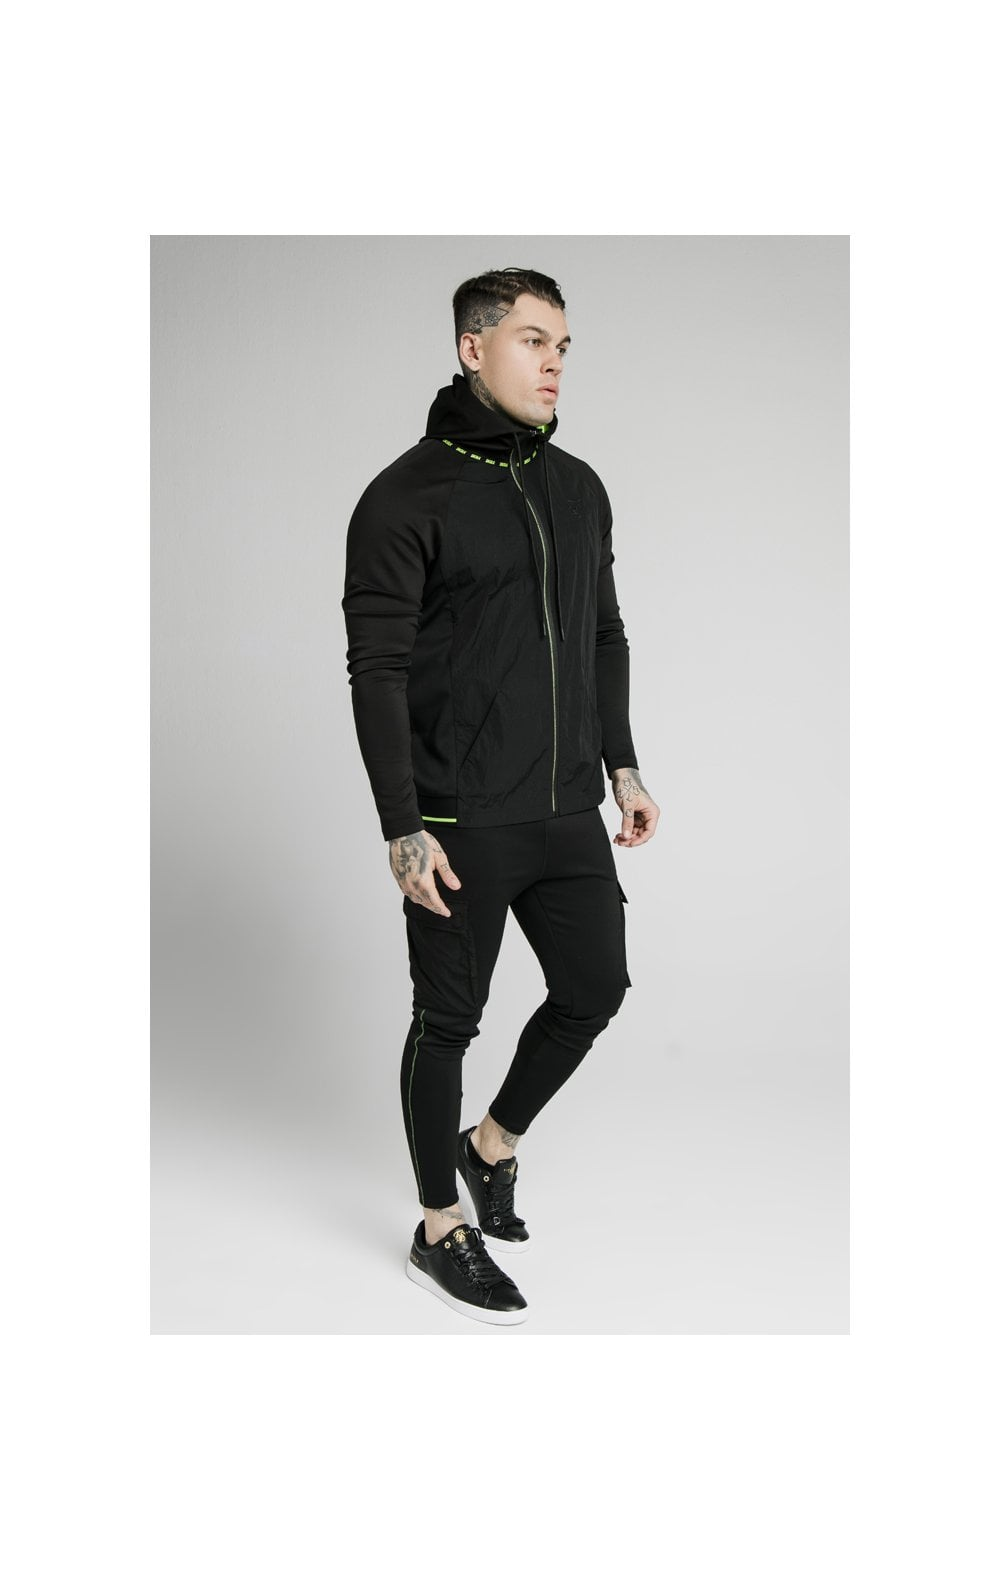 SikSilk Adapt Crushed Nylon Zip Through – Black (4)